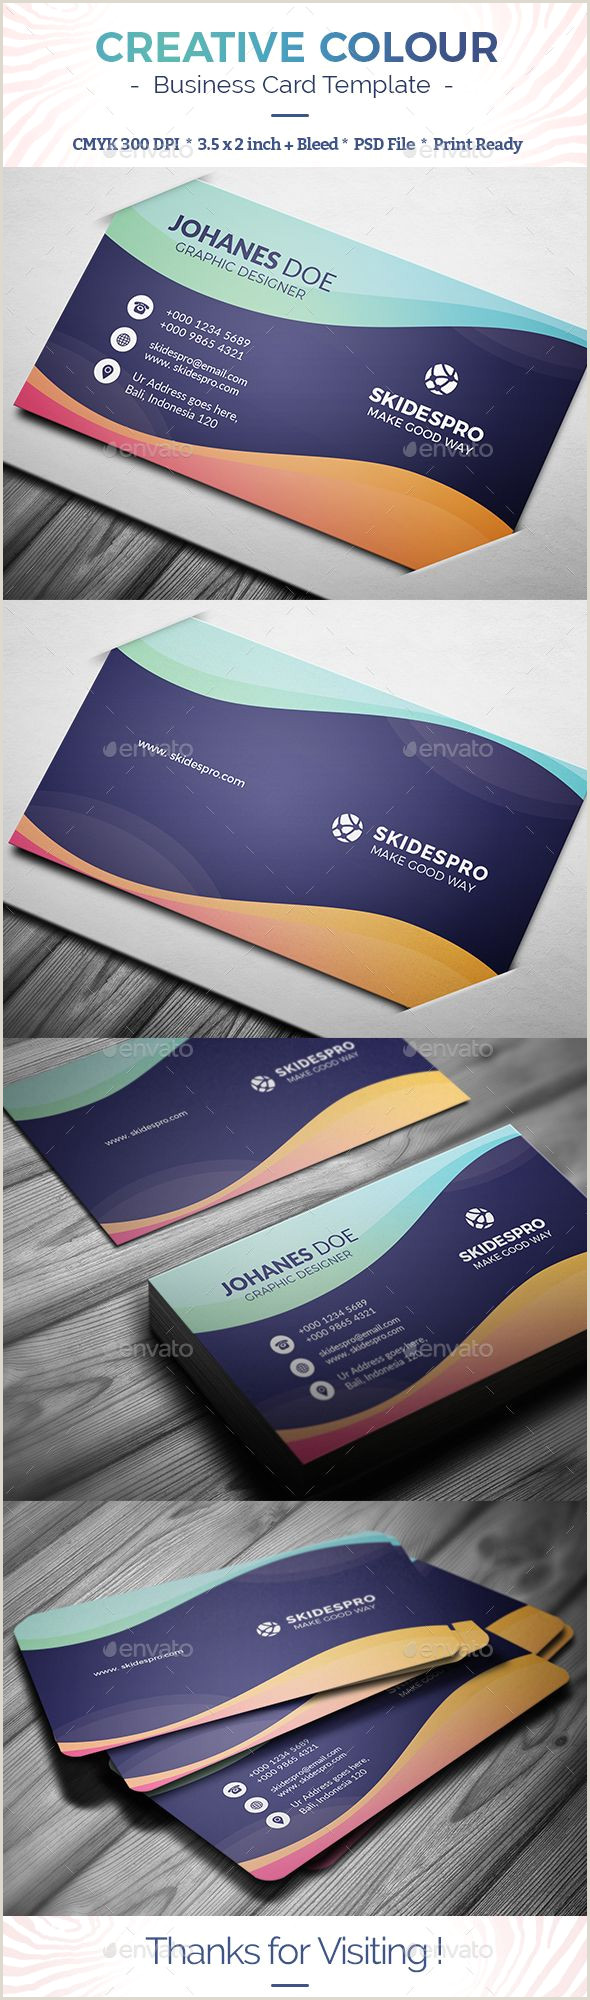 Examples Of Cleaning Business Cards Creative Colour Business Cards Print Templates